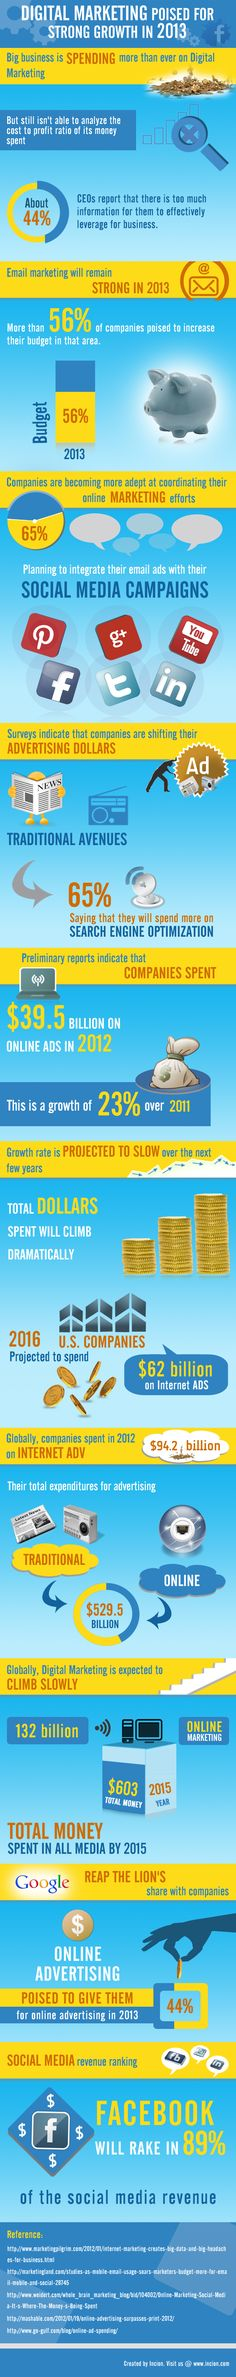 #Digital #Marketing Poised For Strong Growth in #2013